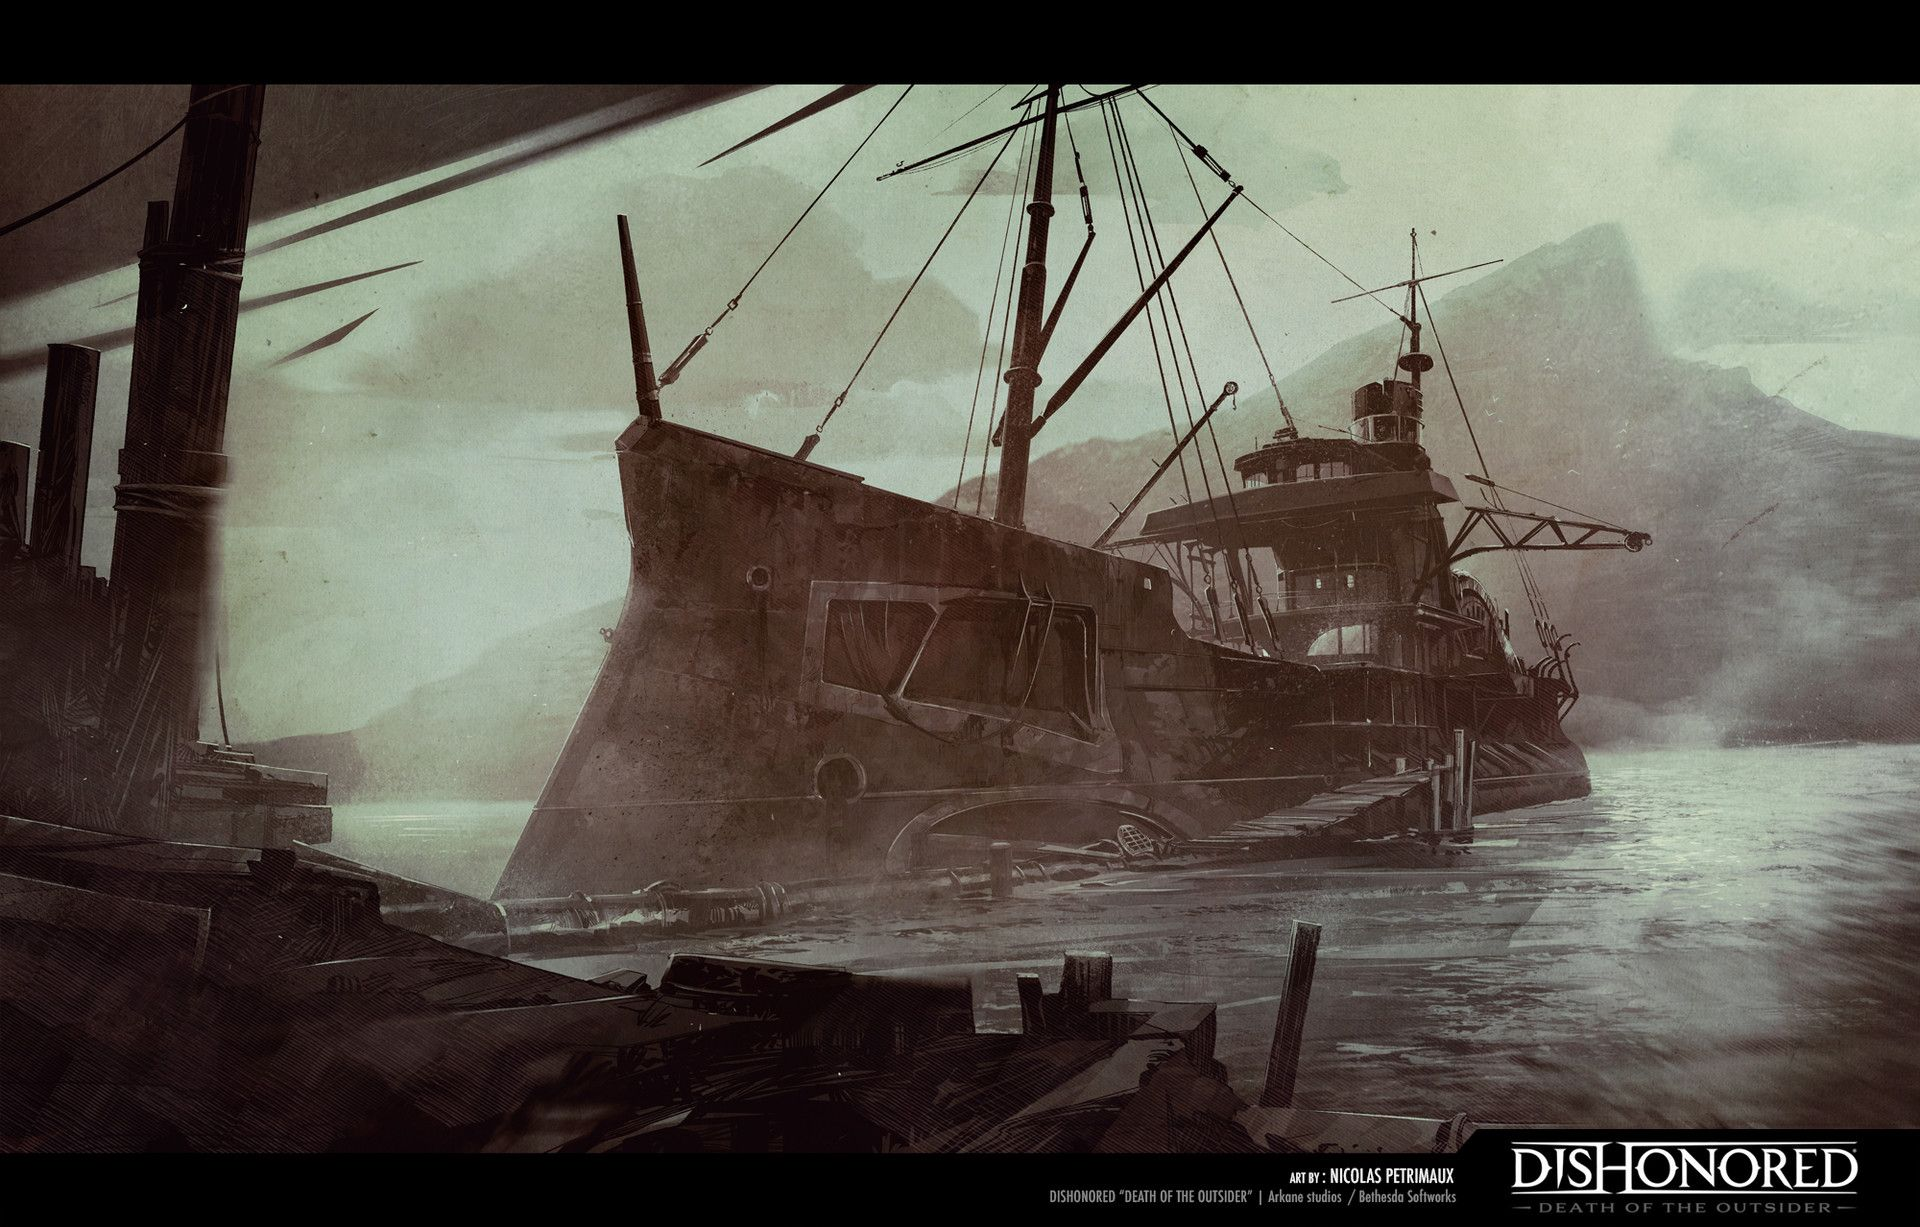 Pin by Andrei KAtajev on dishonored 2 in 2019 | Art